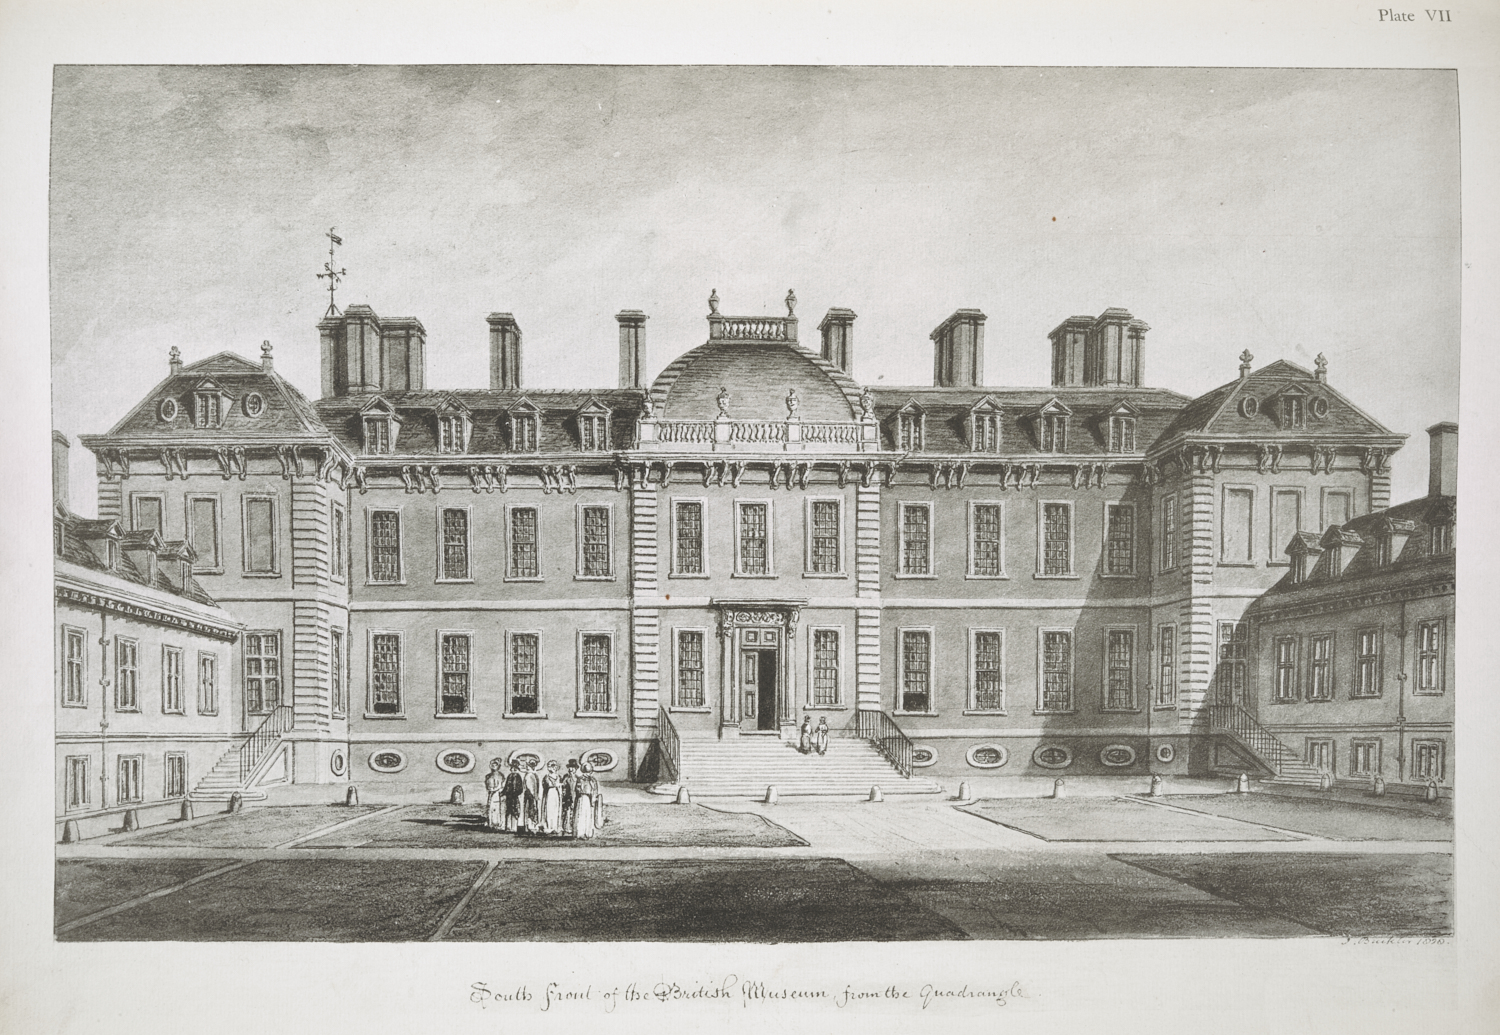 John Chessell Buckler (1793-1894), The South Front of the British Museum, from the Quadrangle, 1828, plate 25.2 x 40.5 cm, image 34 x 45.3 cm, reprinted in Sir Frederic George Kenyon (1863-1952), The Buildings of the British Museum (London: The Artist's Press, Donald Macbeth 1914), plate VII, K.T.C.122.b.8